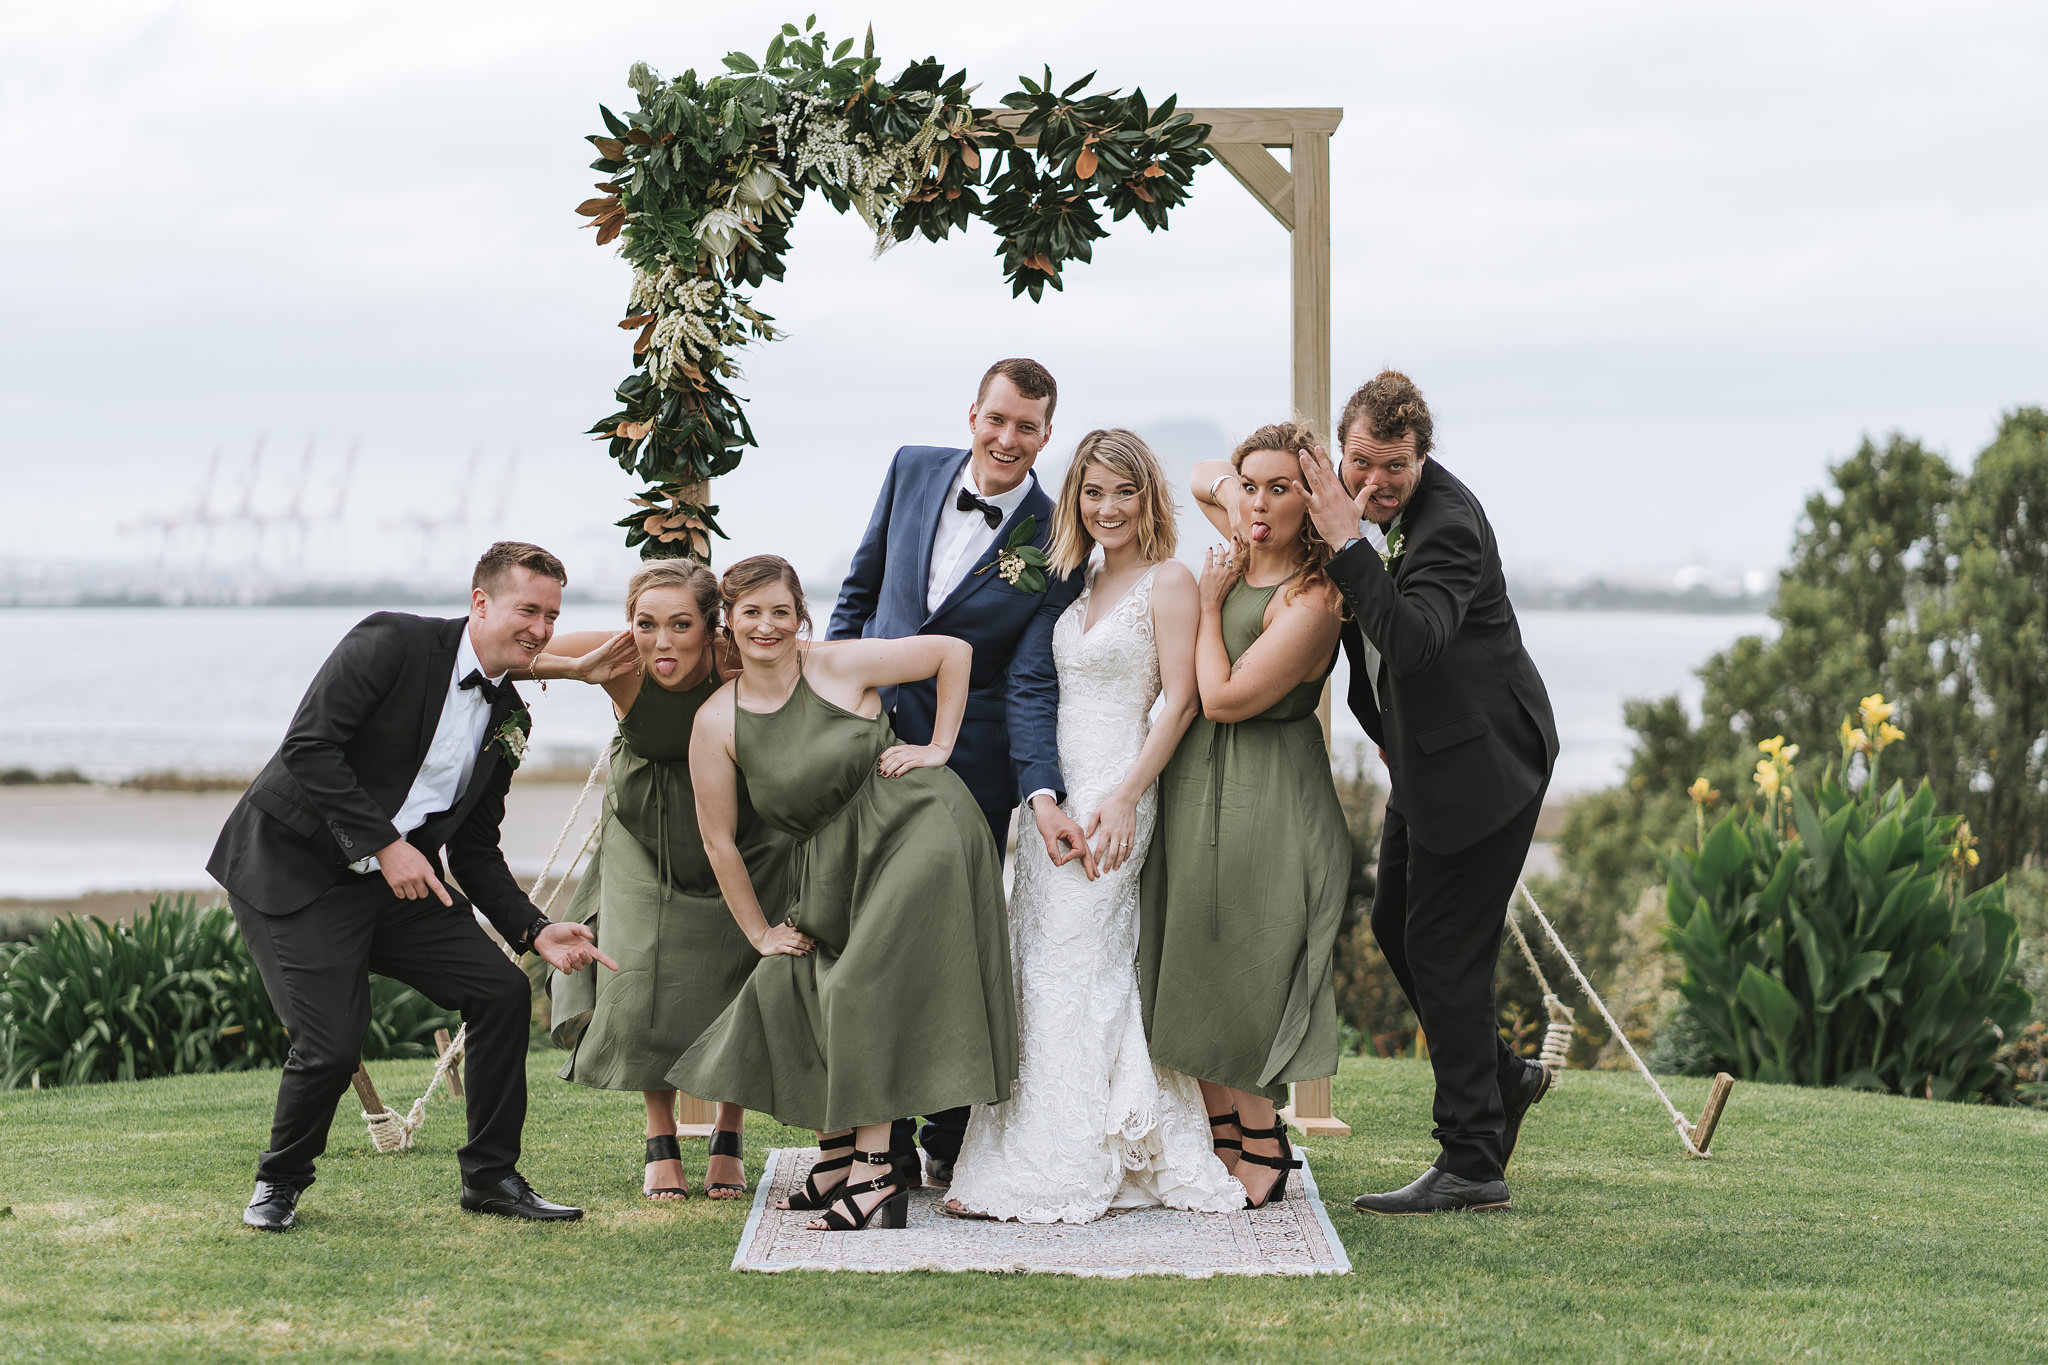 newfound-s-a-tauranga-new-zealand-wedding-photography-601